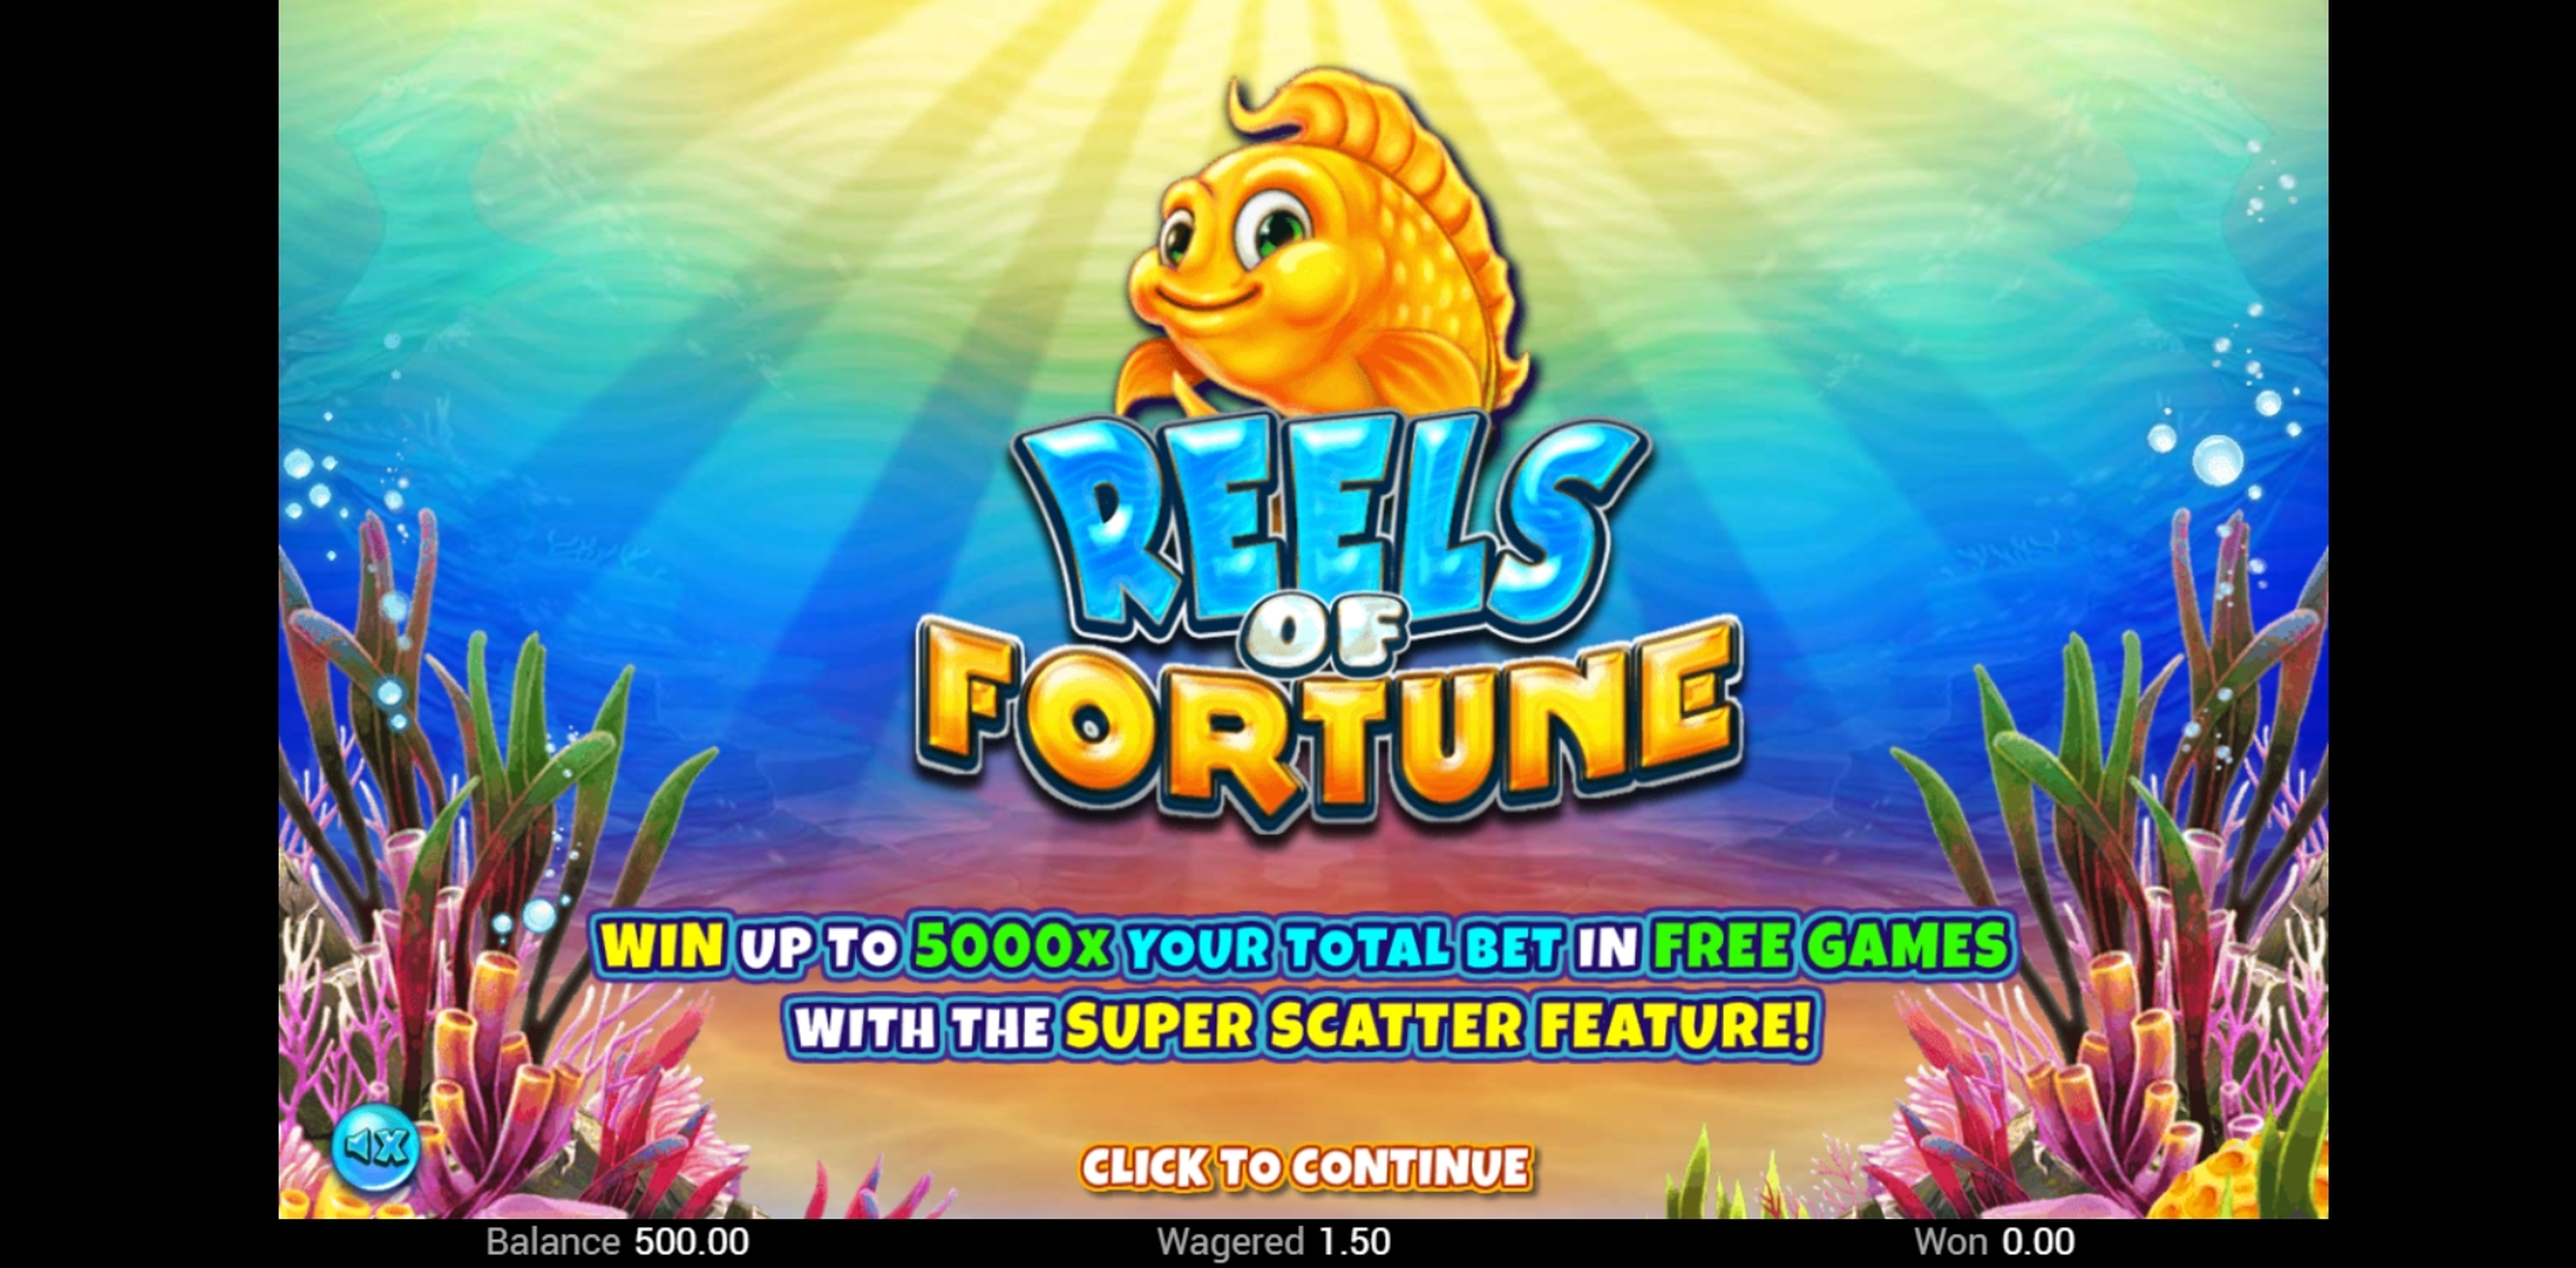 Play Reels Of Fortune (Top Trend Gaming) Free Casino Slot Game by Top Trend Gaming